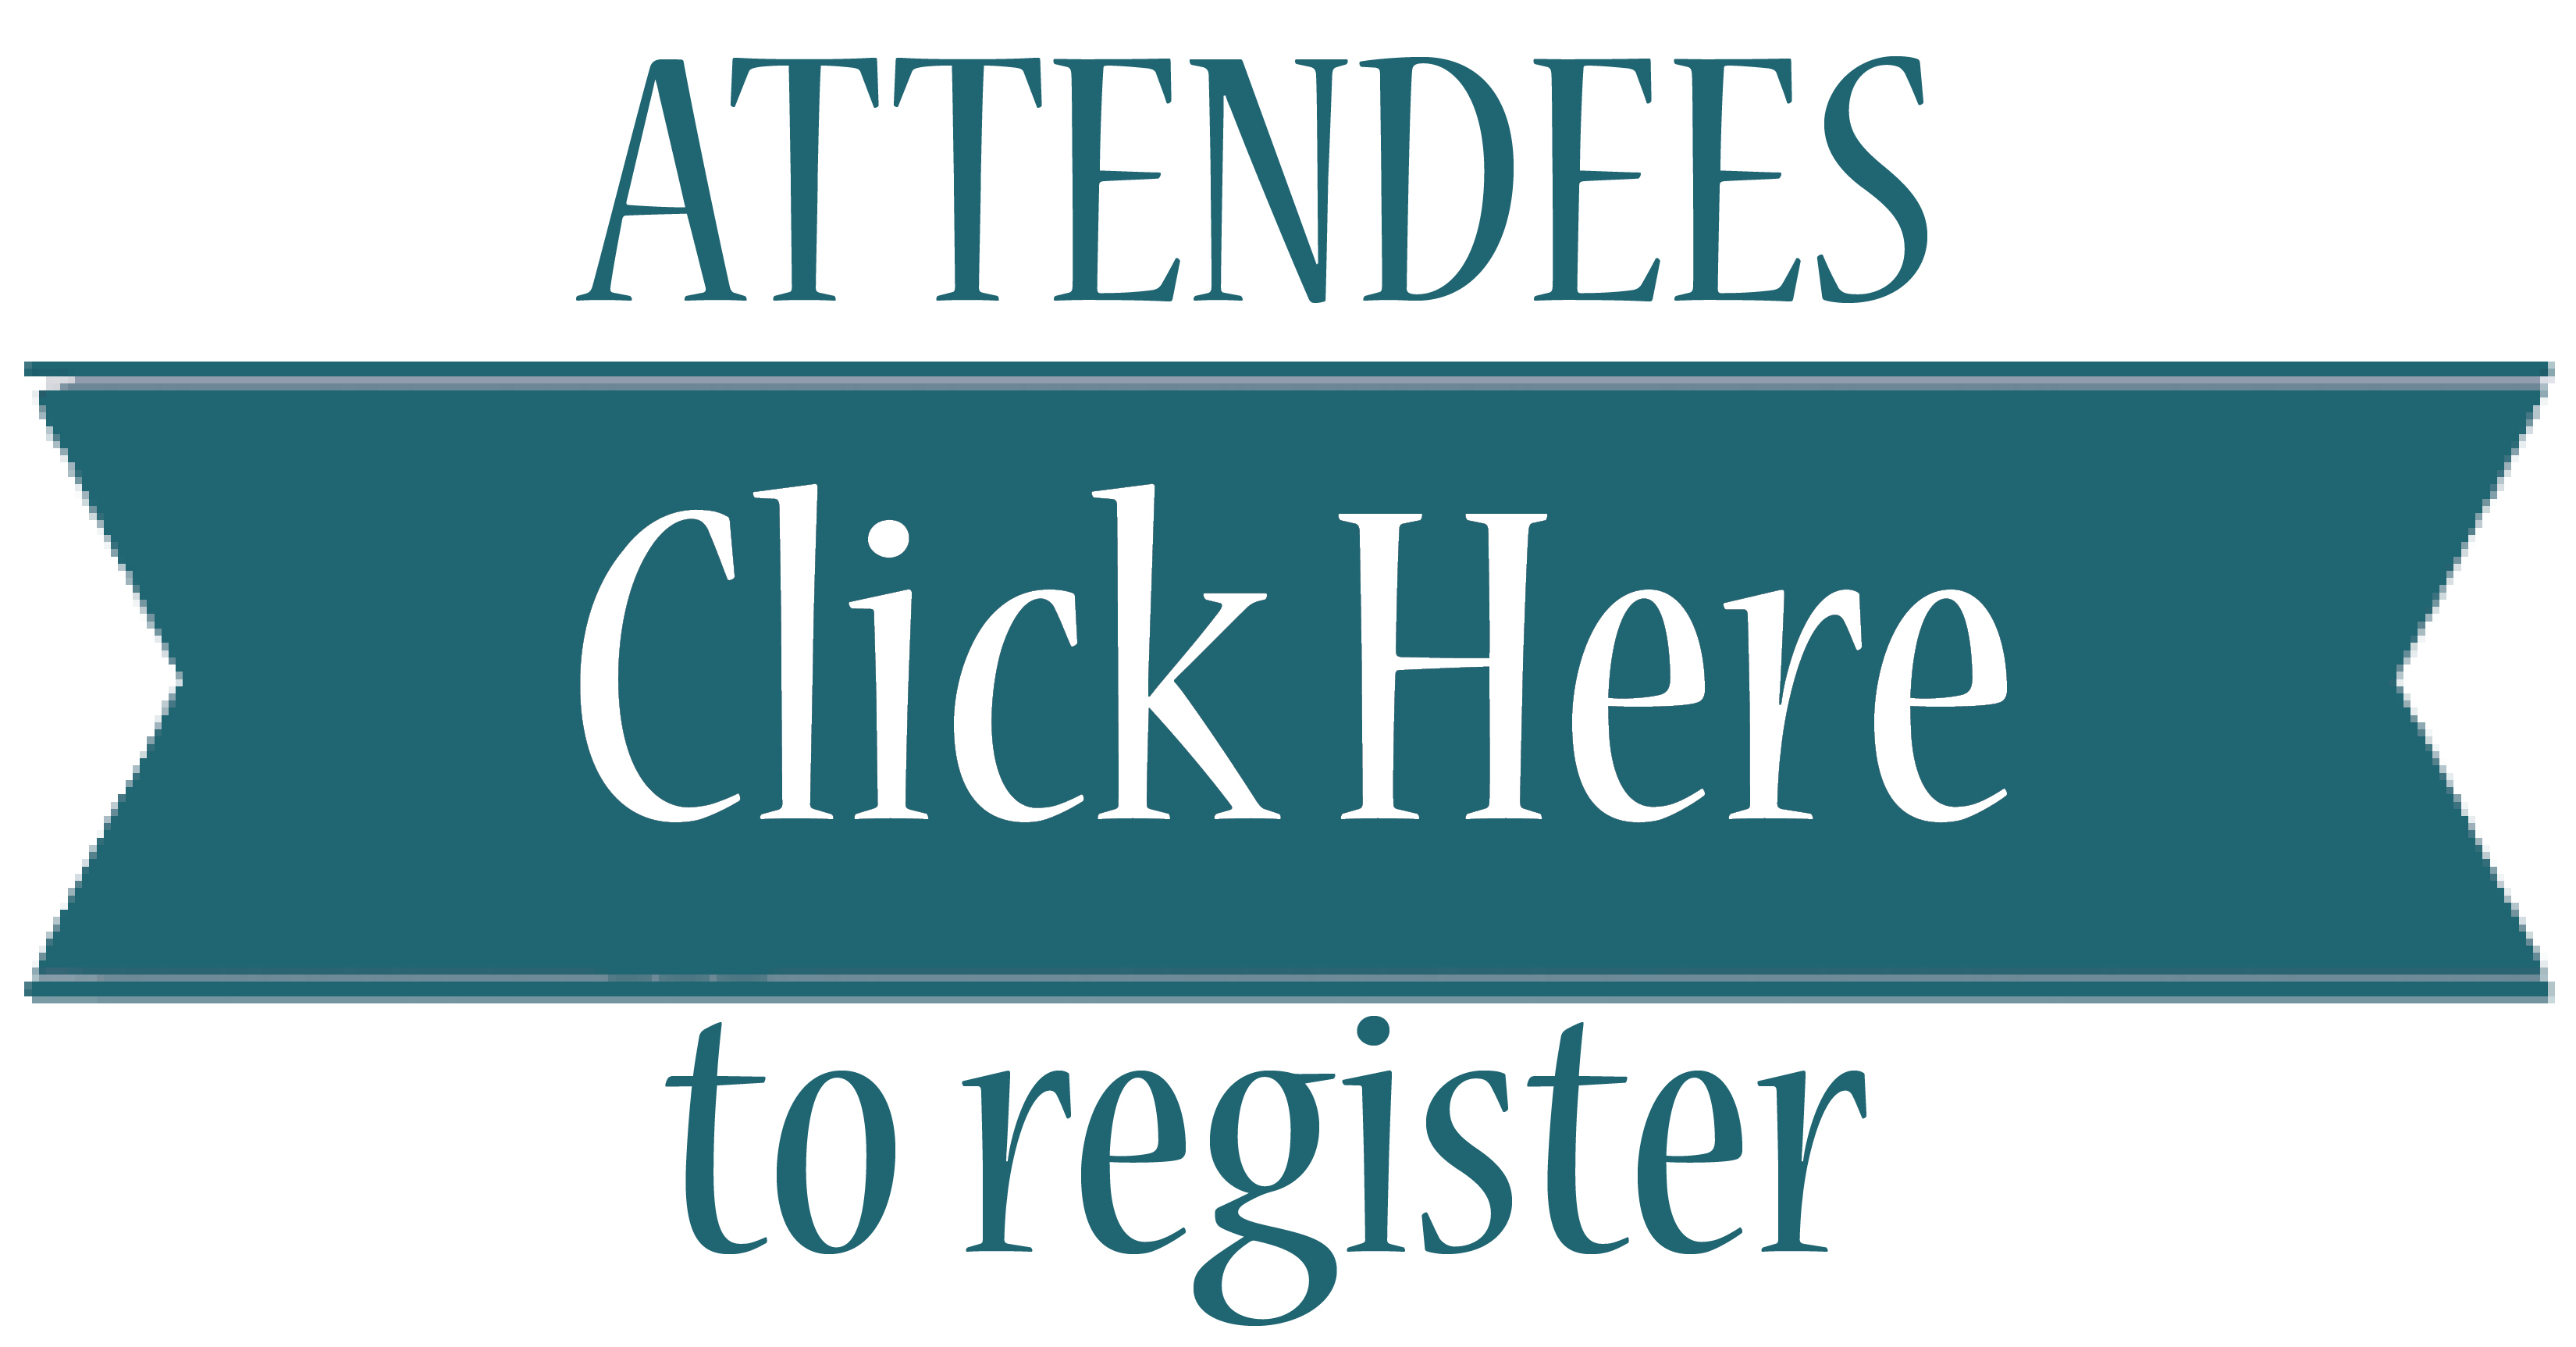 Attendees Click Here to register button